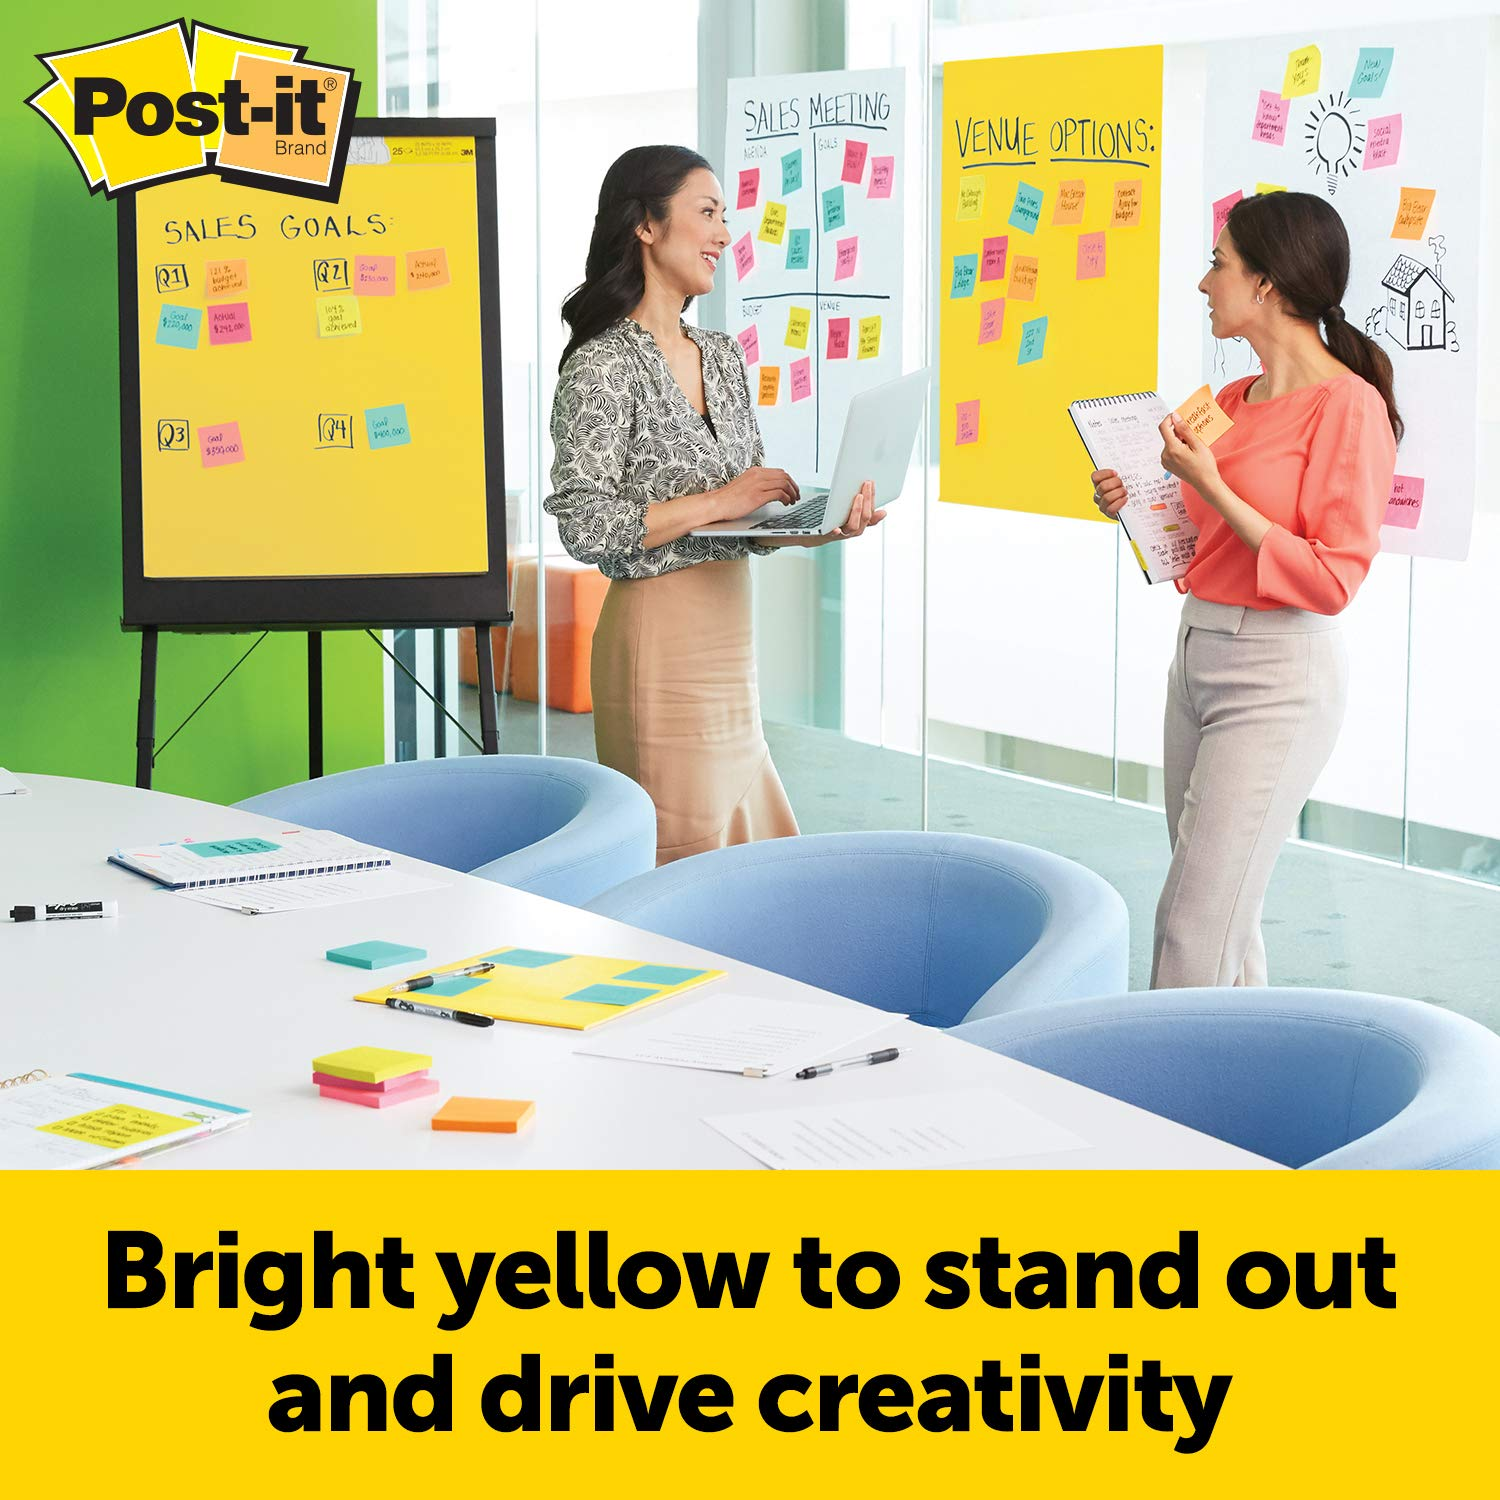 Post-it Super Sticky Easel Pad, 25 x 30 Inches, 25 Sheets/Pad, 3 Pads (559YW-3PK), Large Bright Yellow Premium Self Stick Flip Chart Paper, Super Sticking Power by Post-it (Image #2)